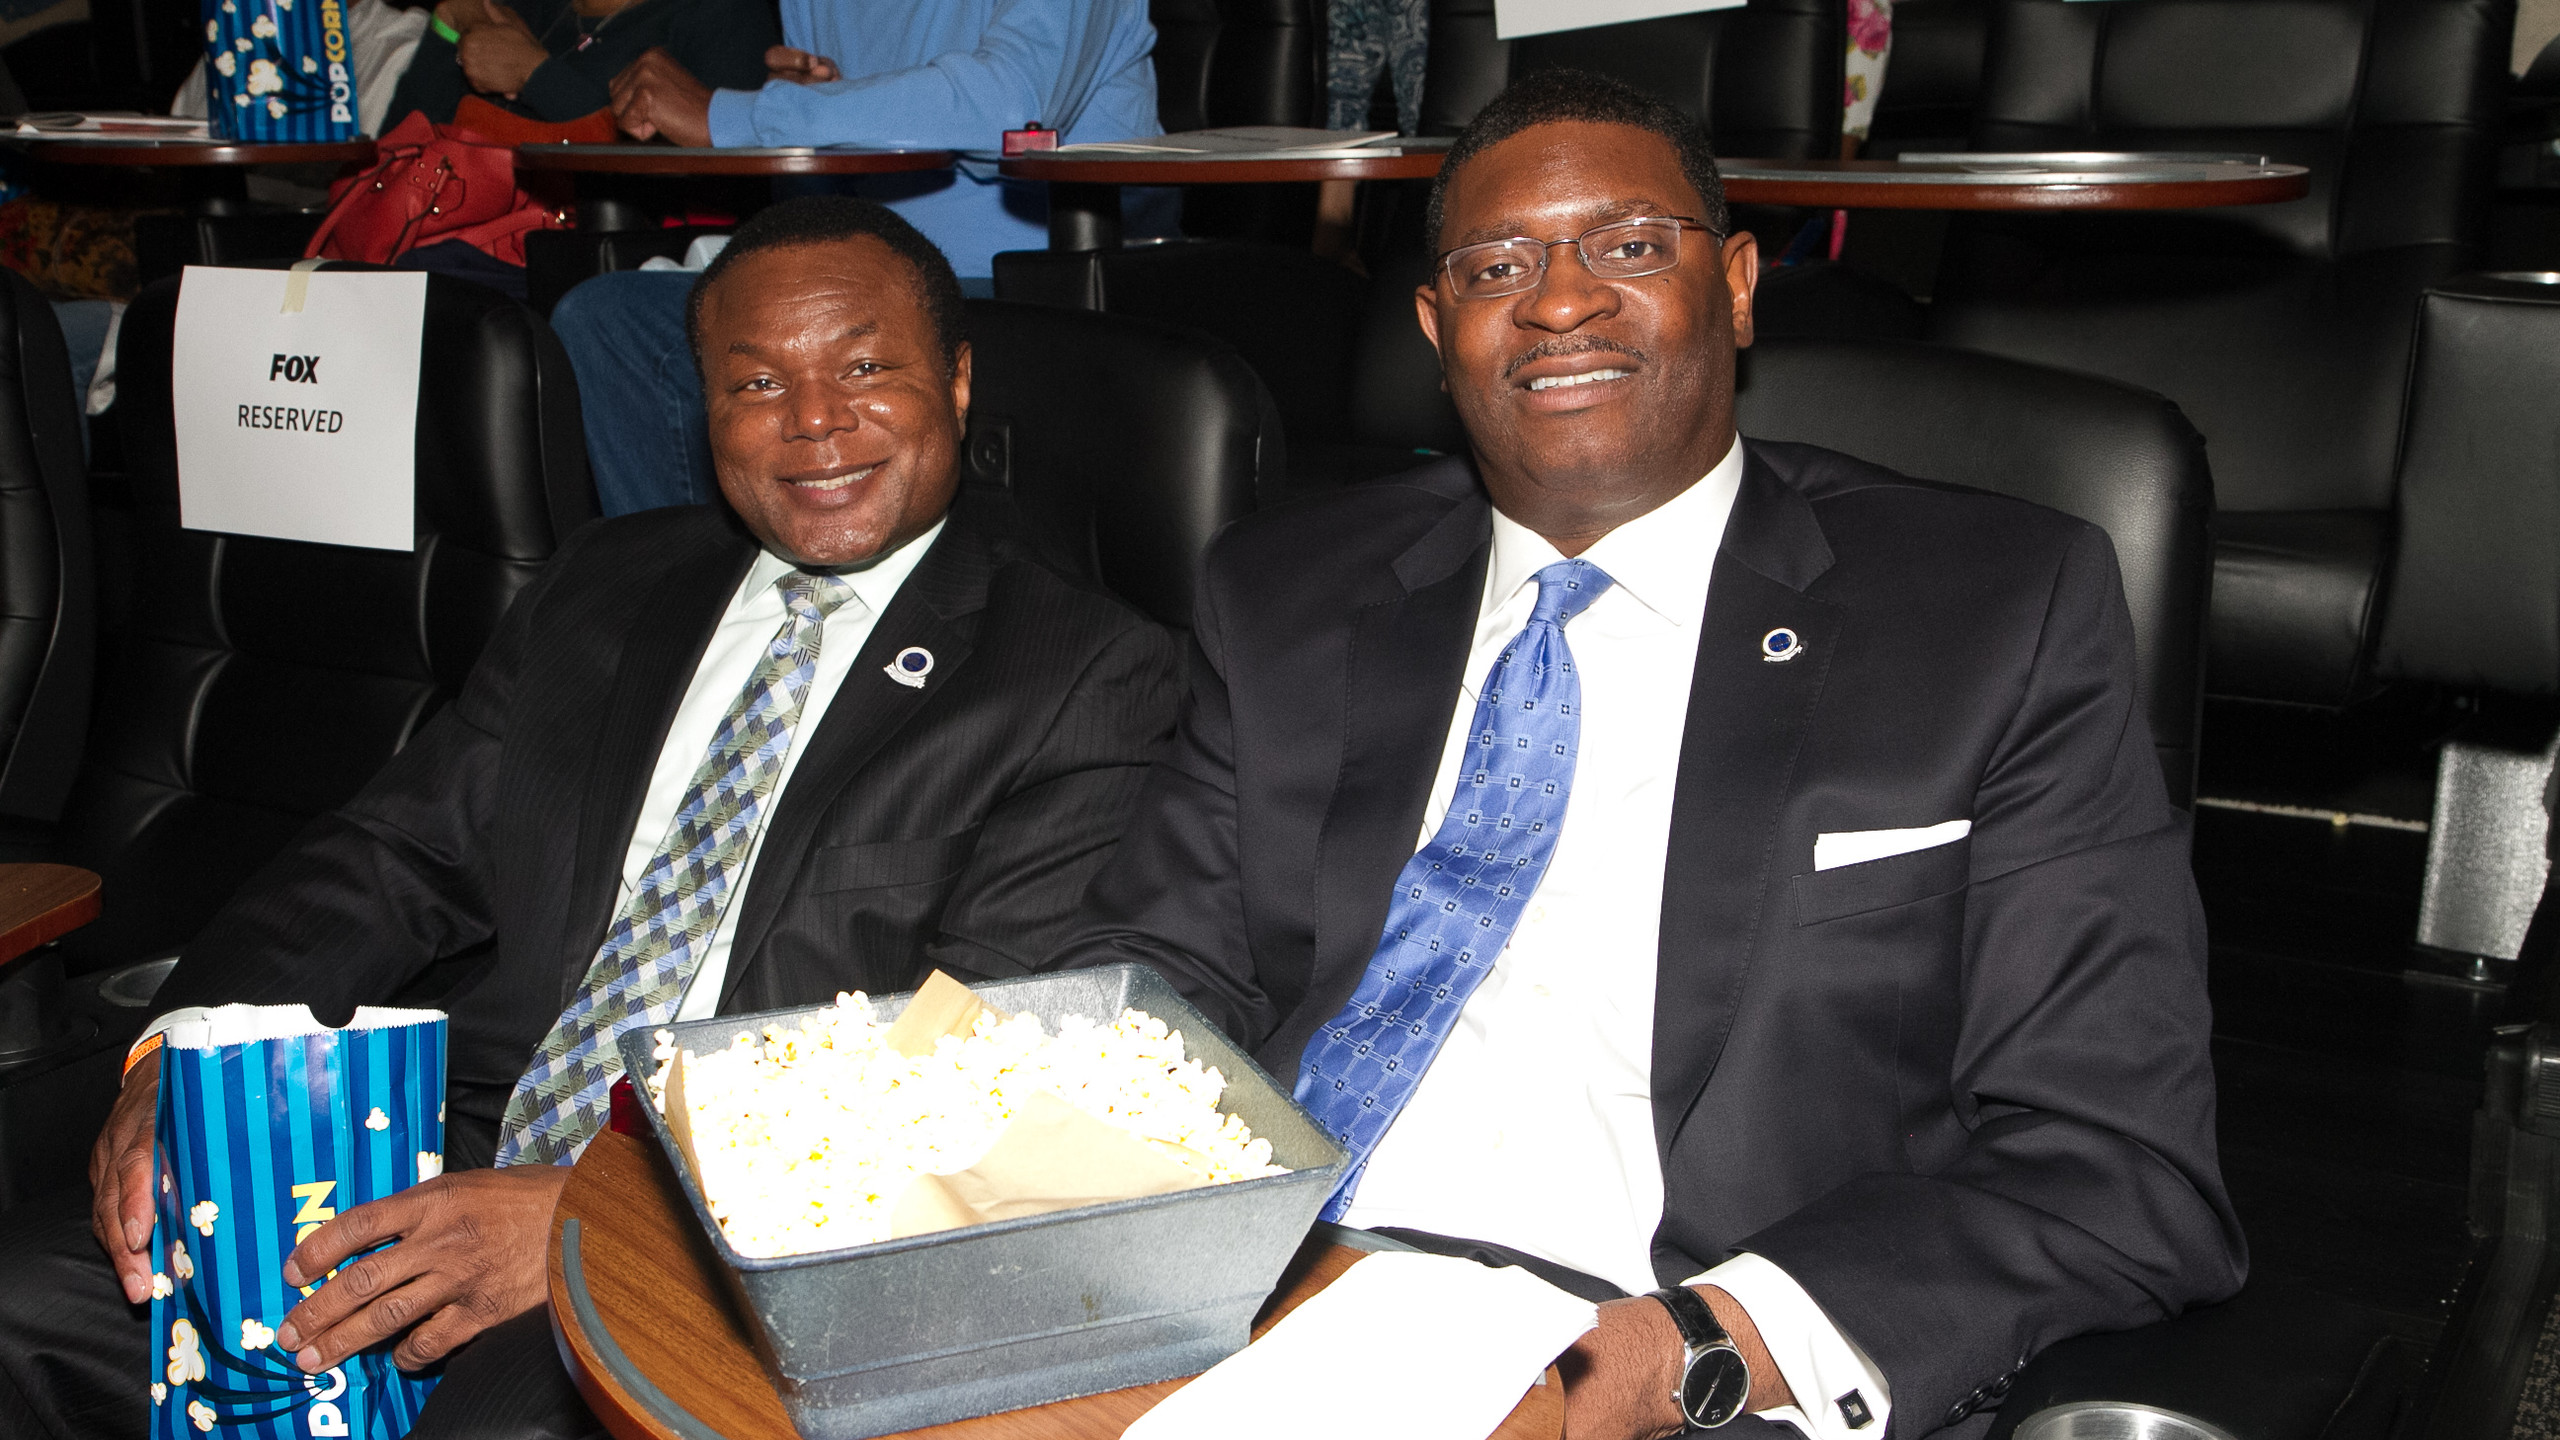 Perry Tarrant and Dwayne Crawford from National Organization of Black Law Enforcement Executives